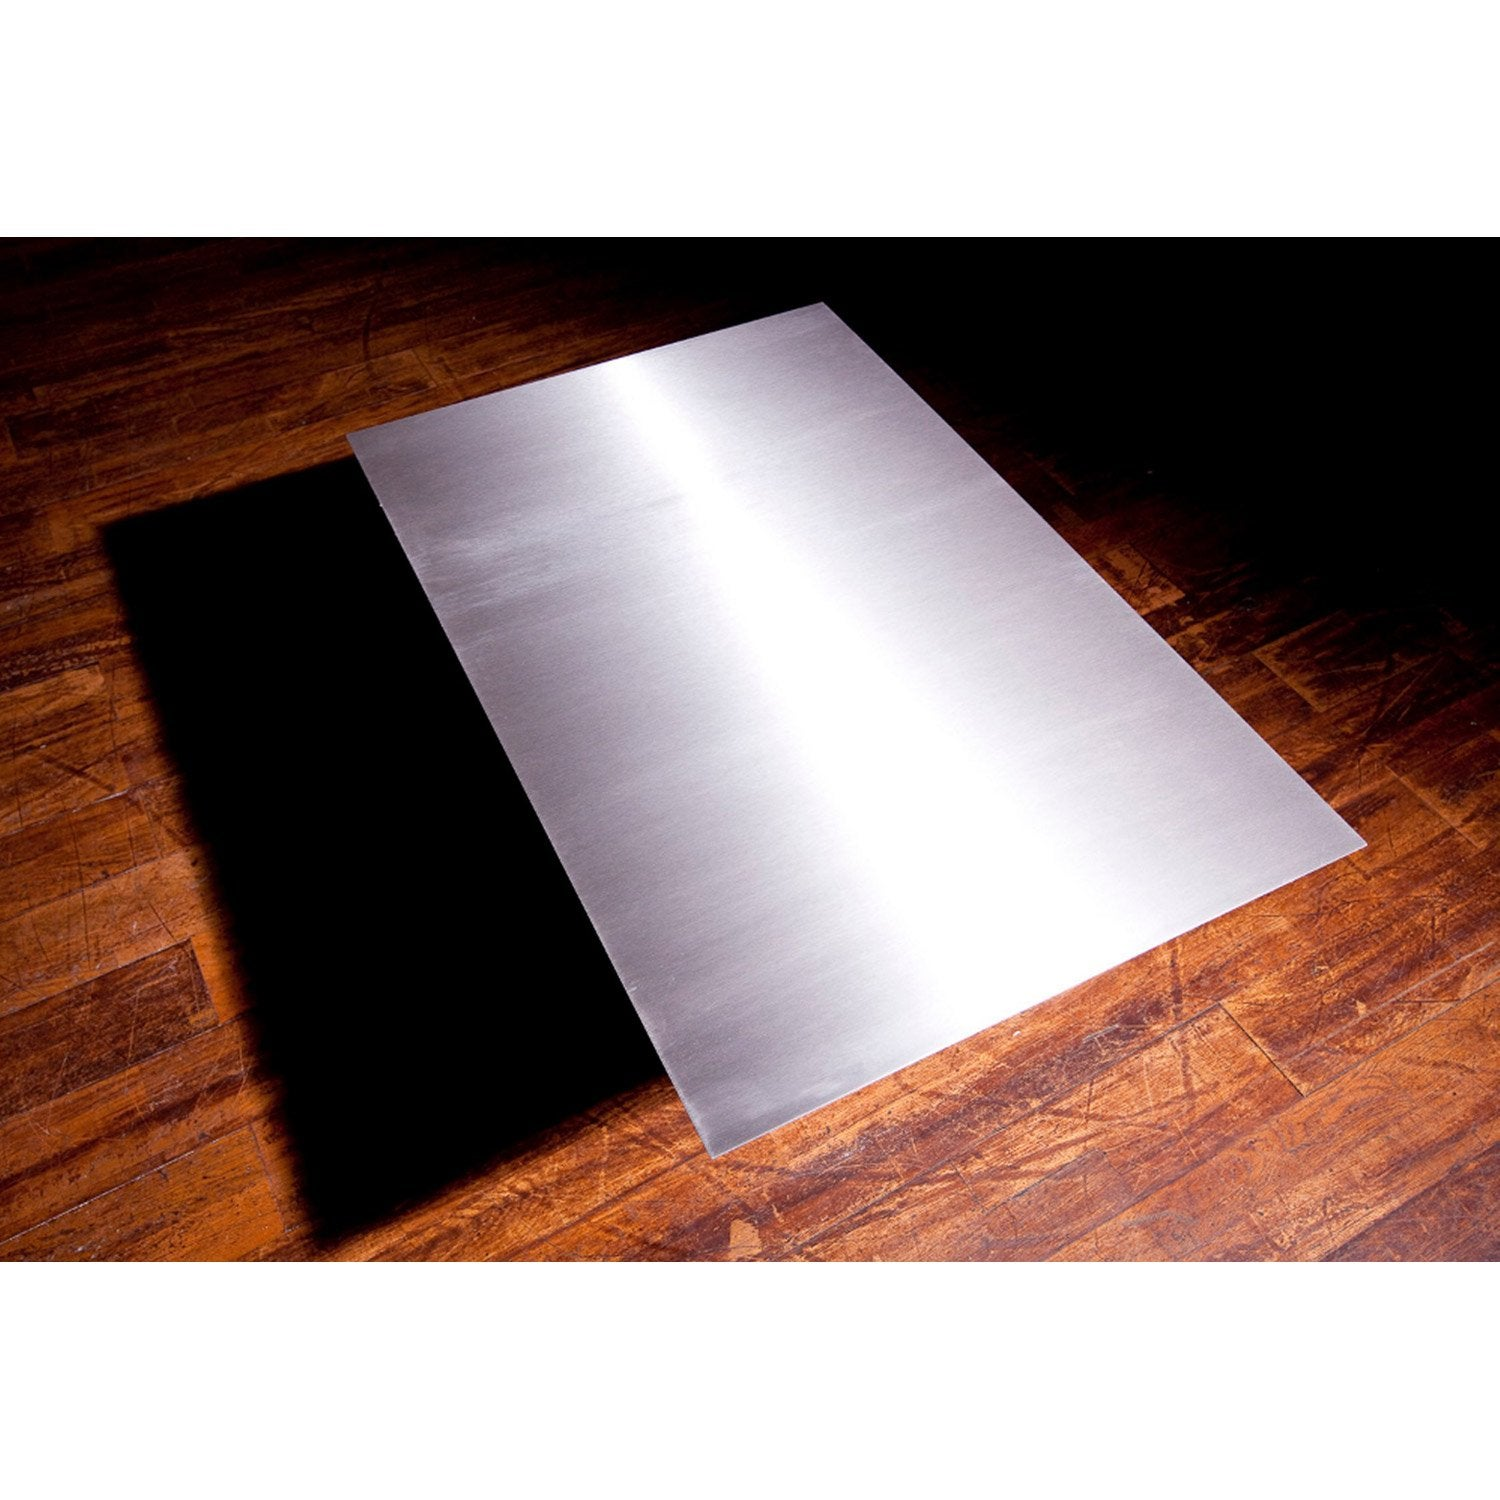 Plaque de protection sol inox satin inox equation for Plaque anti eclaboussure cuisine murale